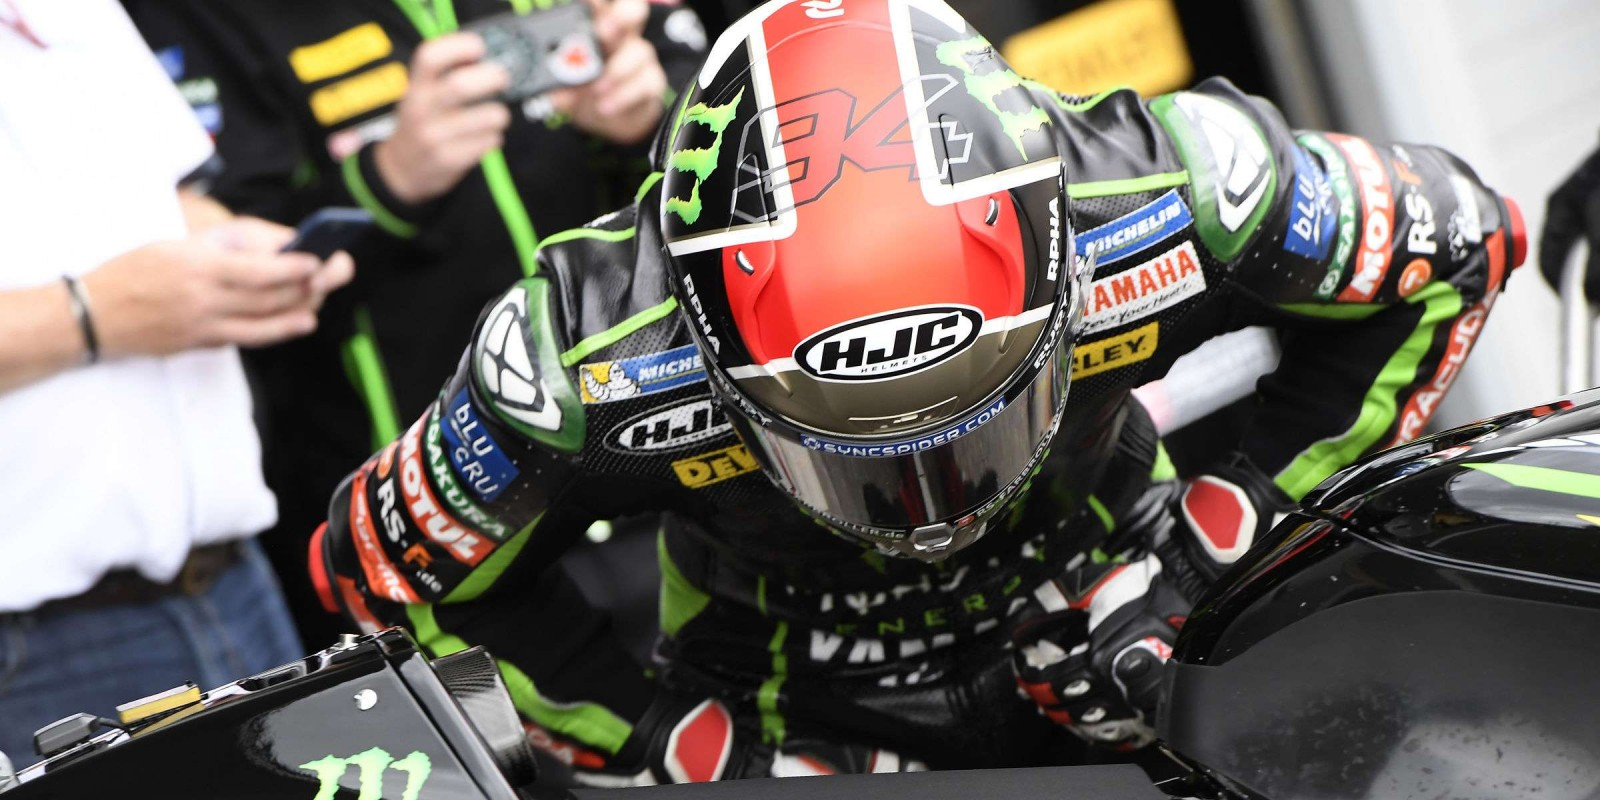 Action from the ninth round of 2017 MotoGP and Sachsenring for the Grand Prix of Germany